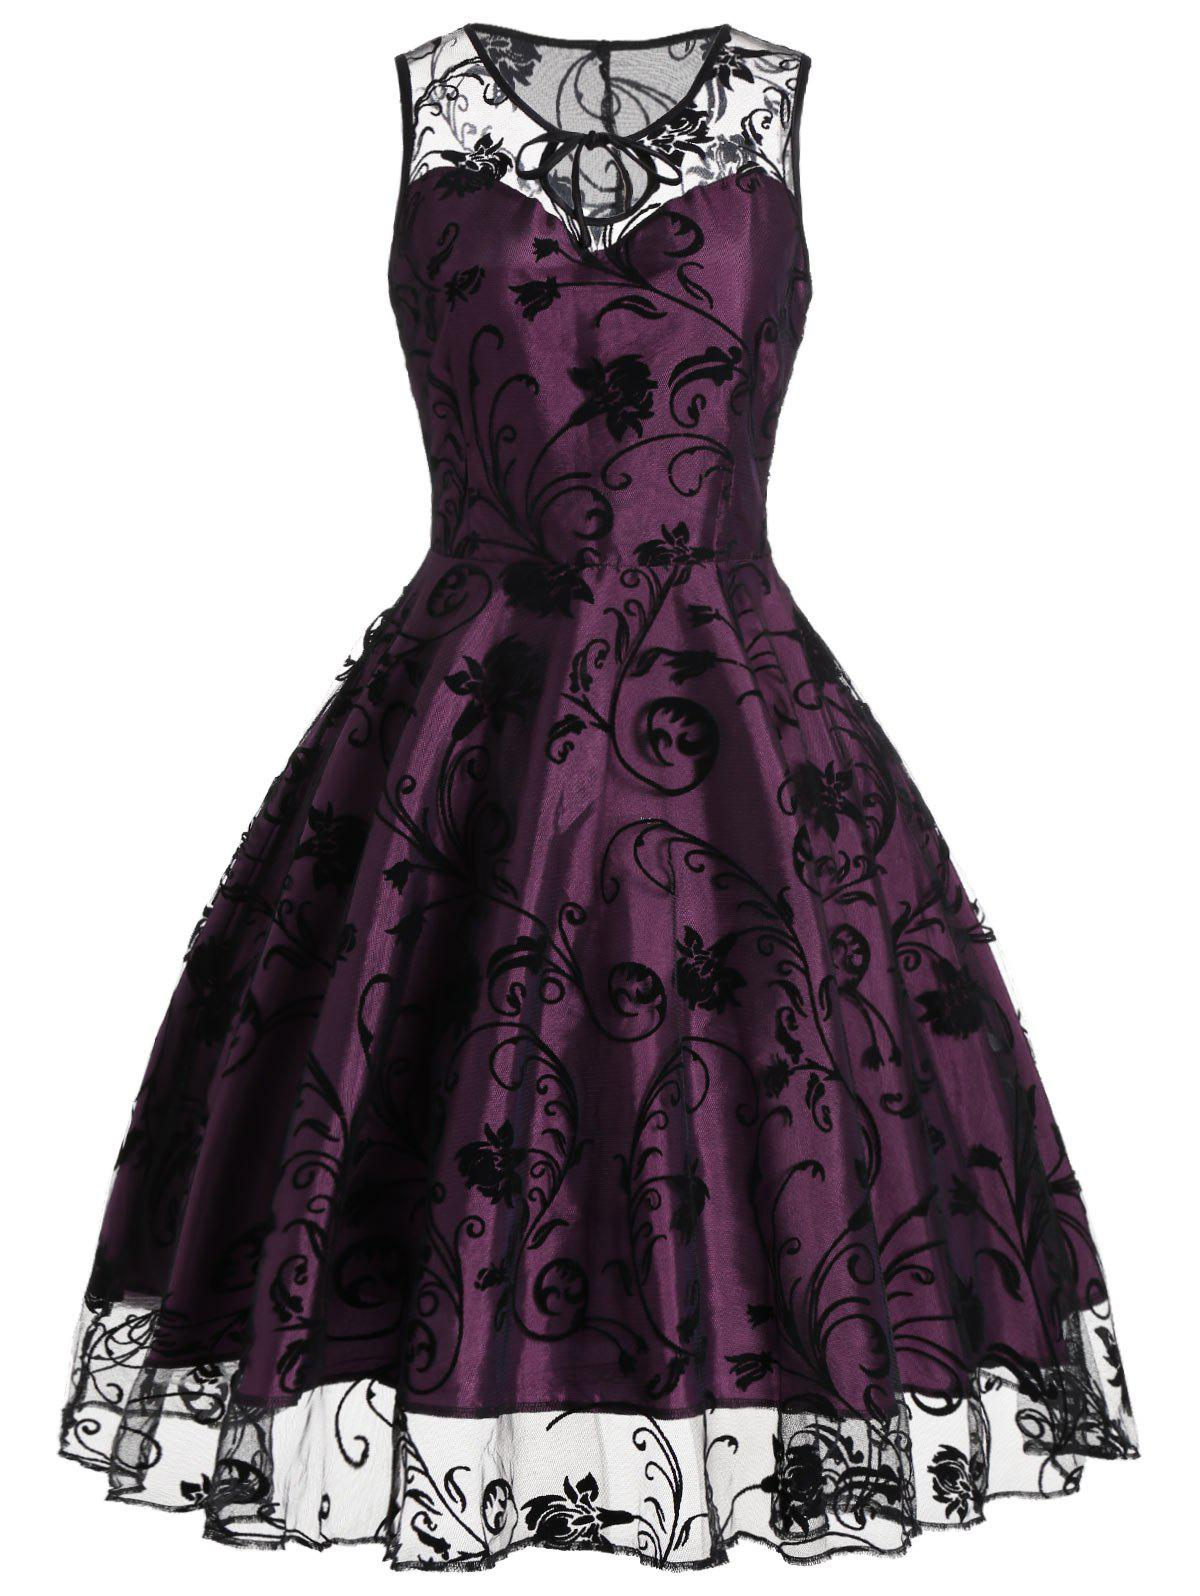 Homecoming Floral Tulle Tea Length Sleeveless Vintage Dress - PURPLISH RED 2XL